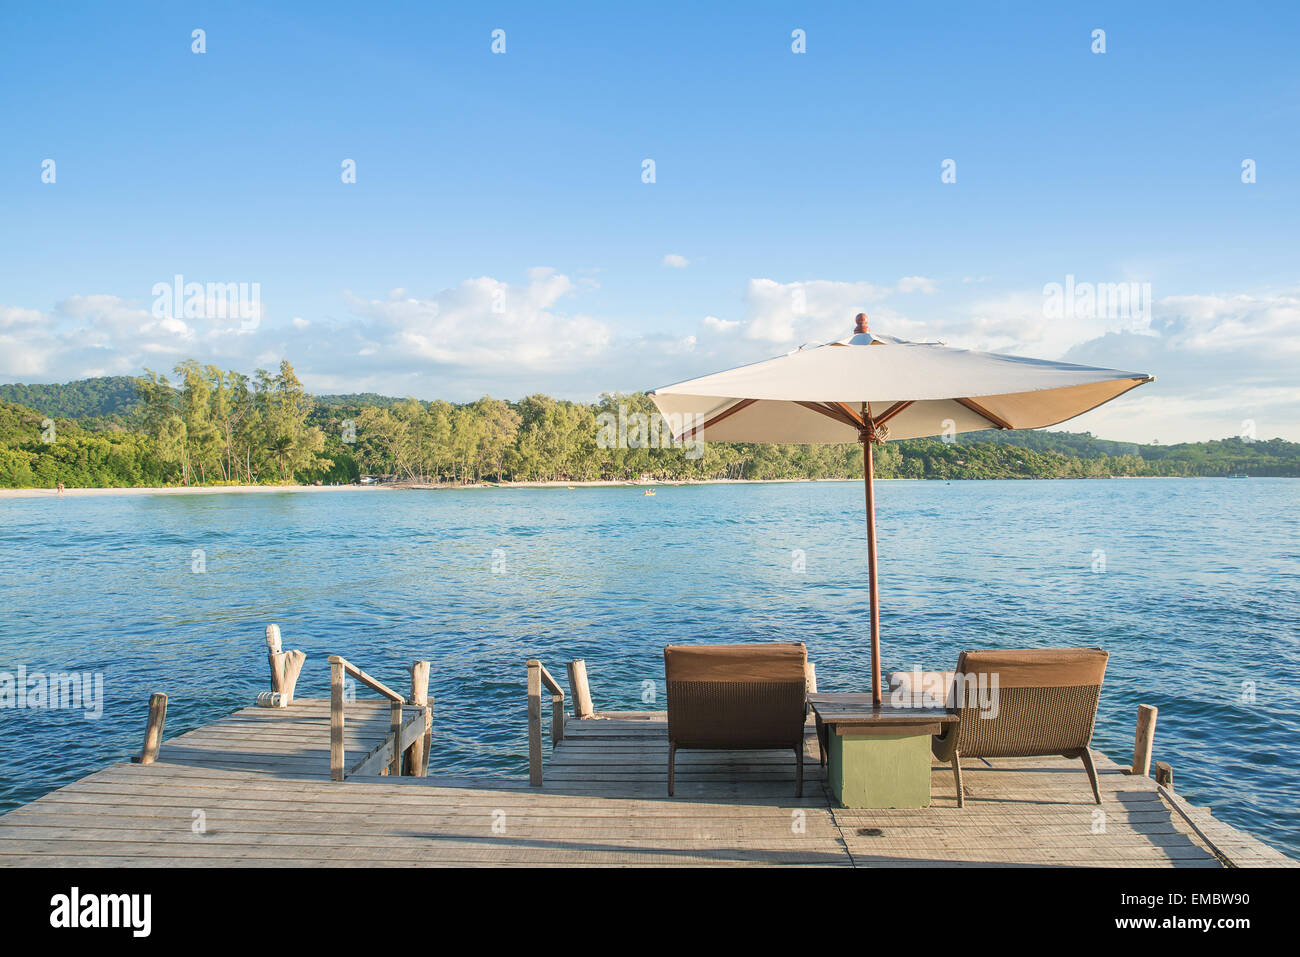 Summer, Travel, Vacation and Holiday concept - Beach chairs and umbrella on wooden desk against blue sky in Phuket,Thailand - Stock Image